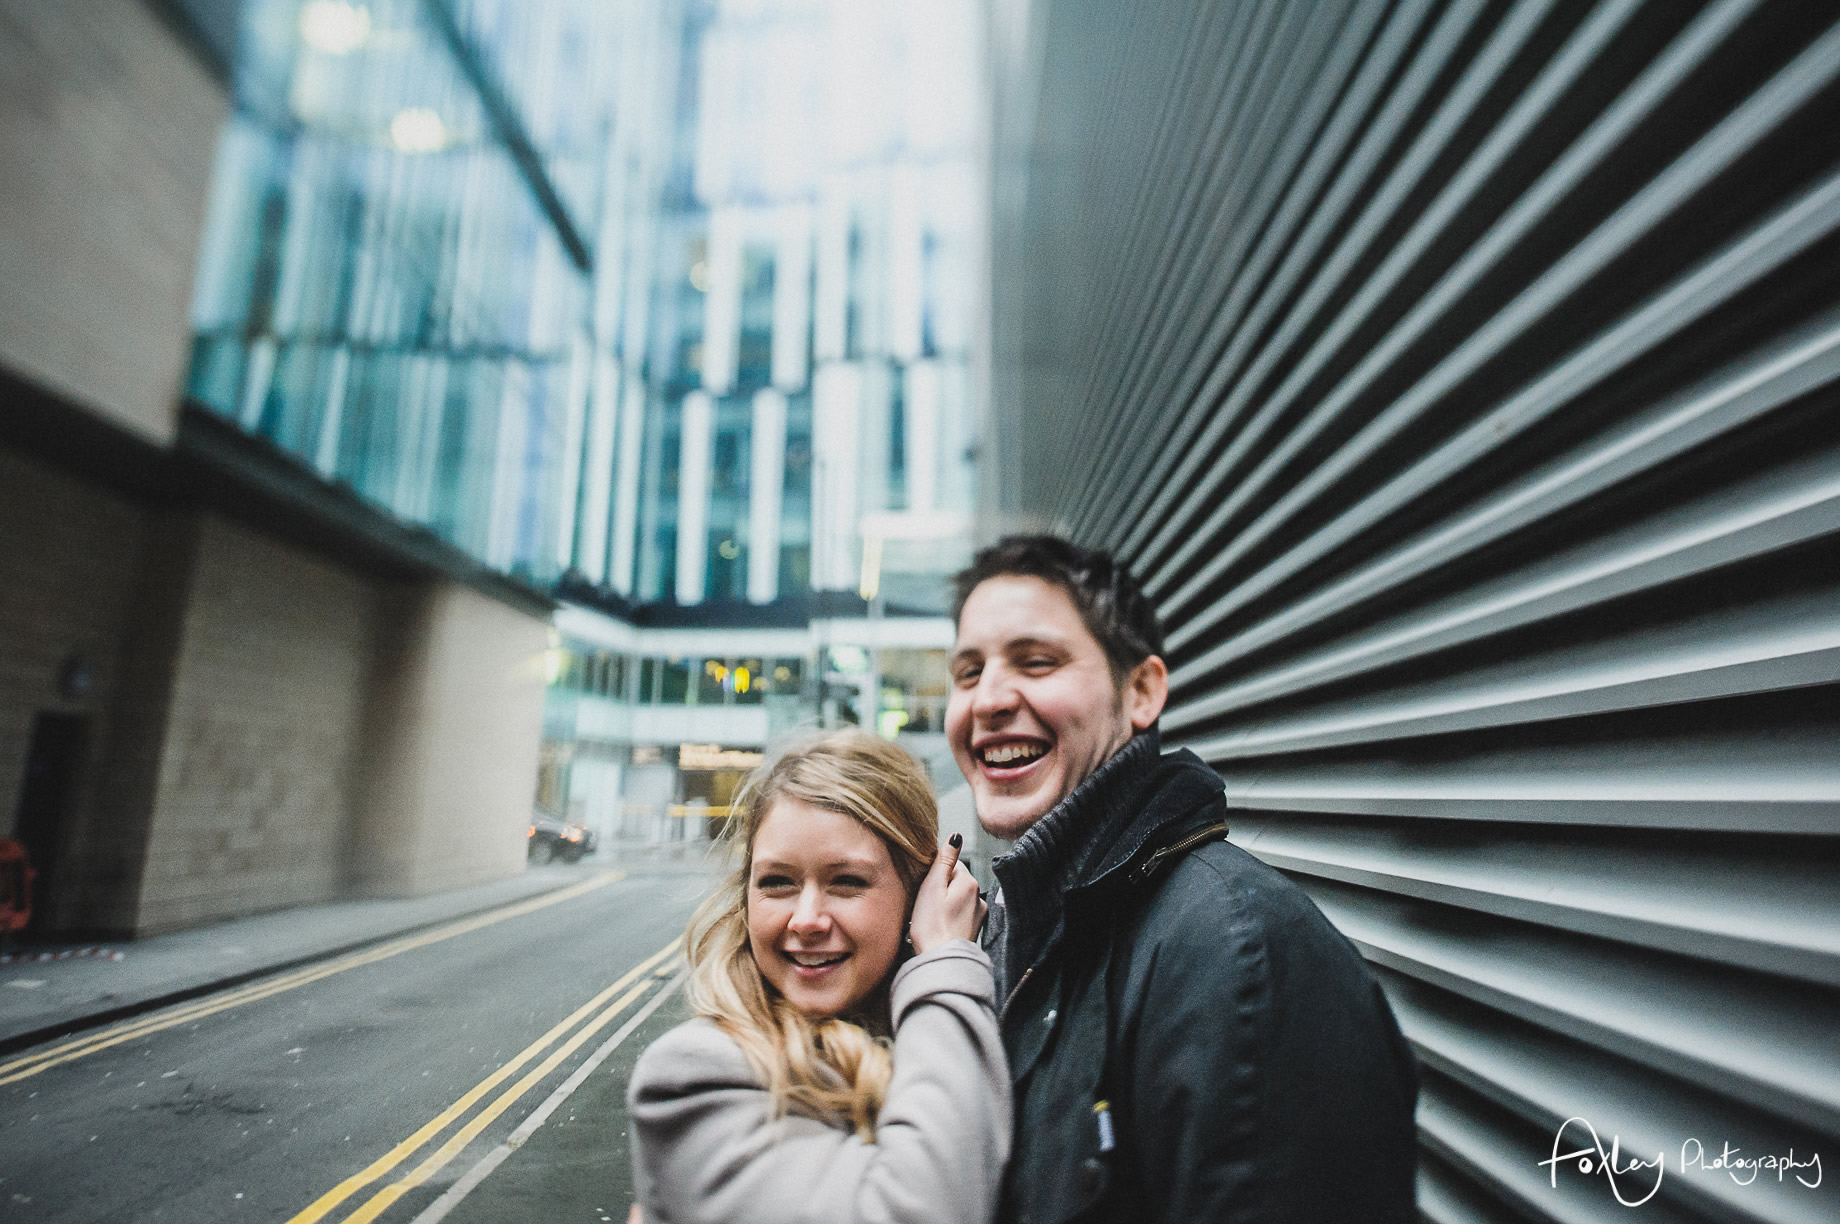 Gemma-and-Lewis-Pre-Wedding-Shoot-Manchester-City-Centre-022